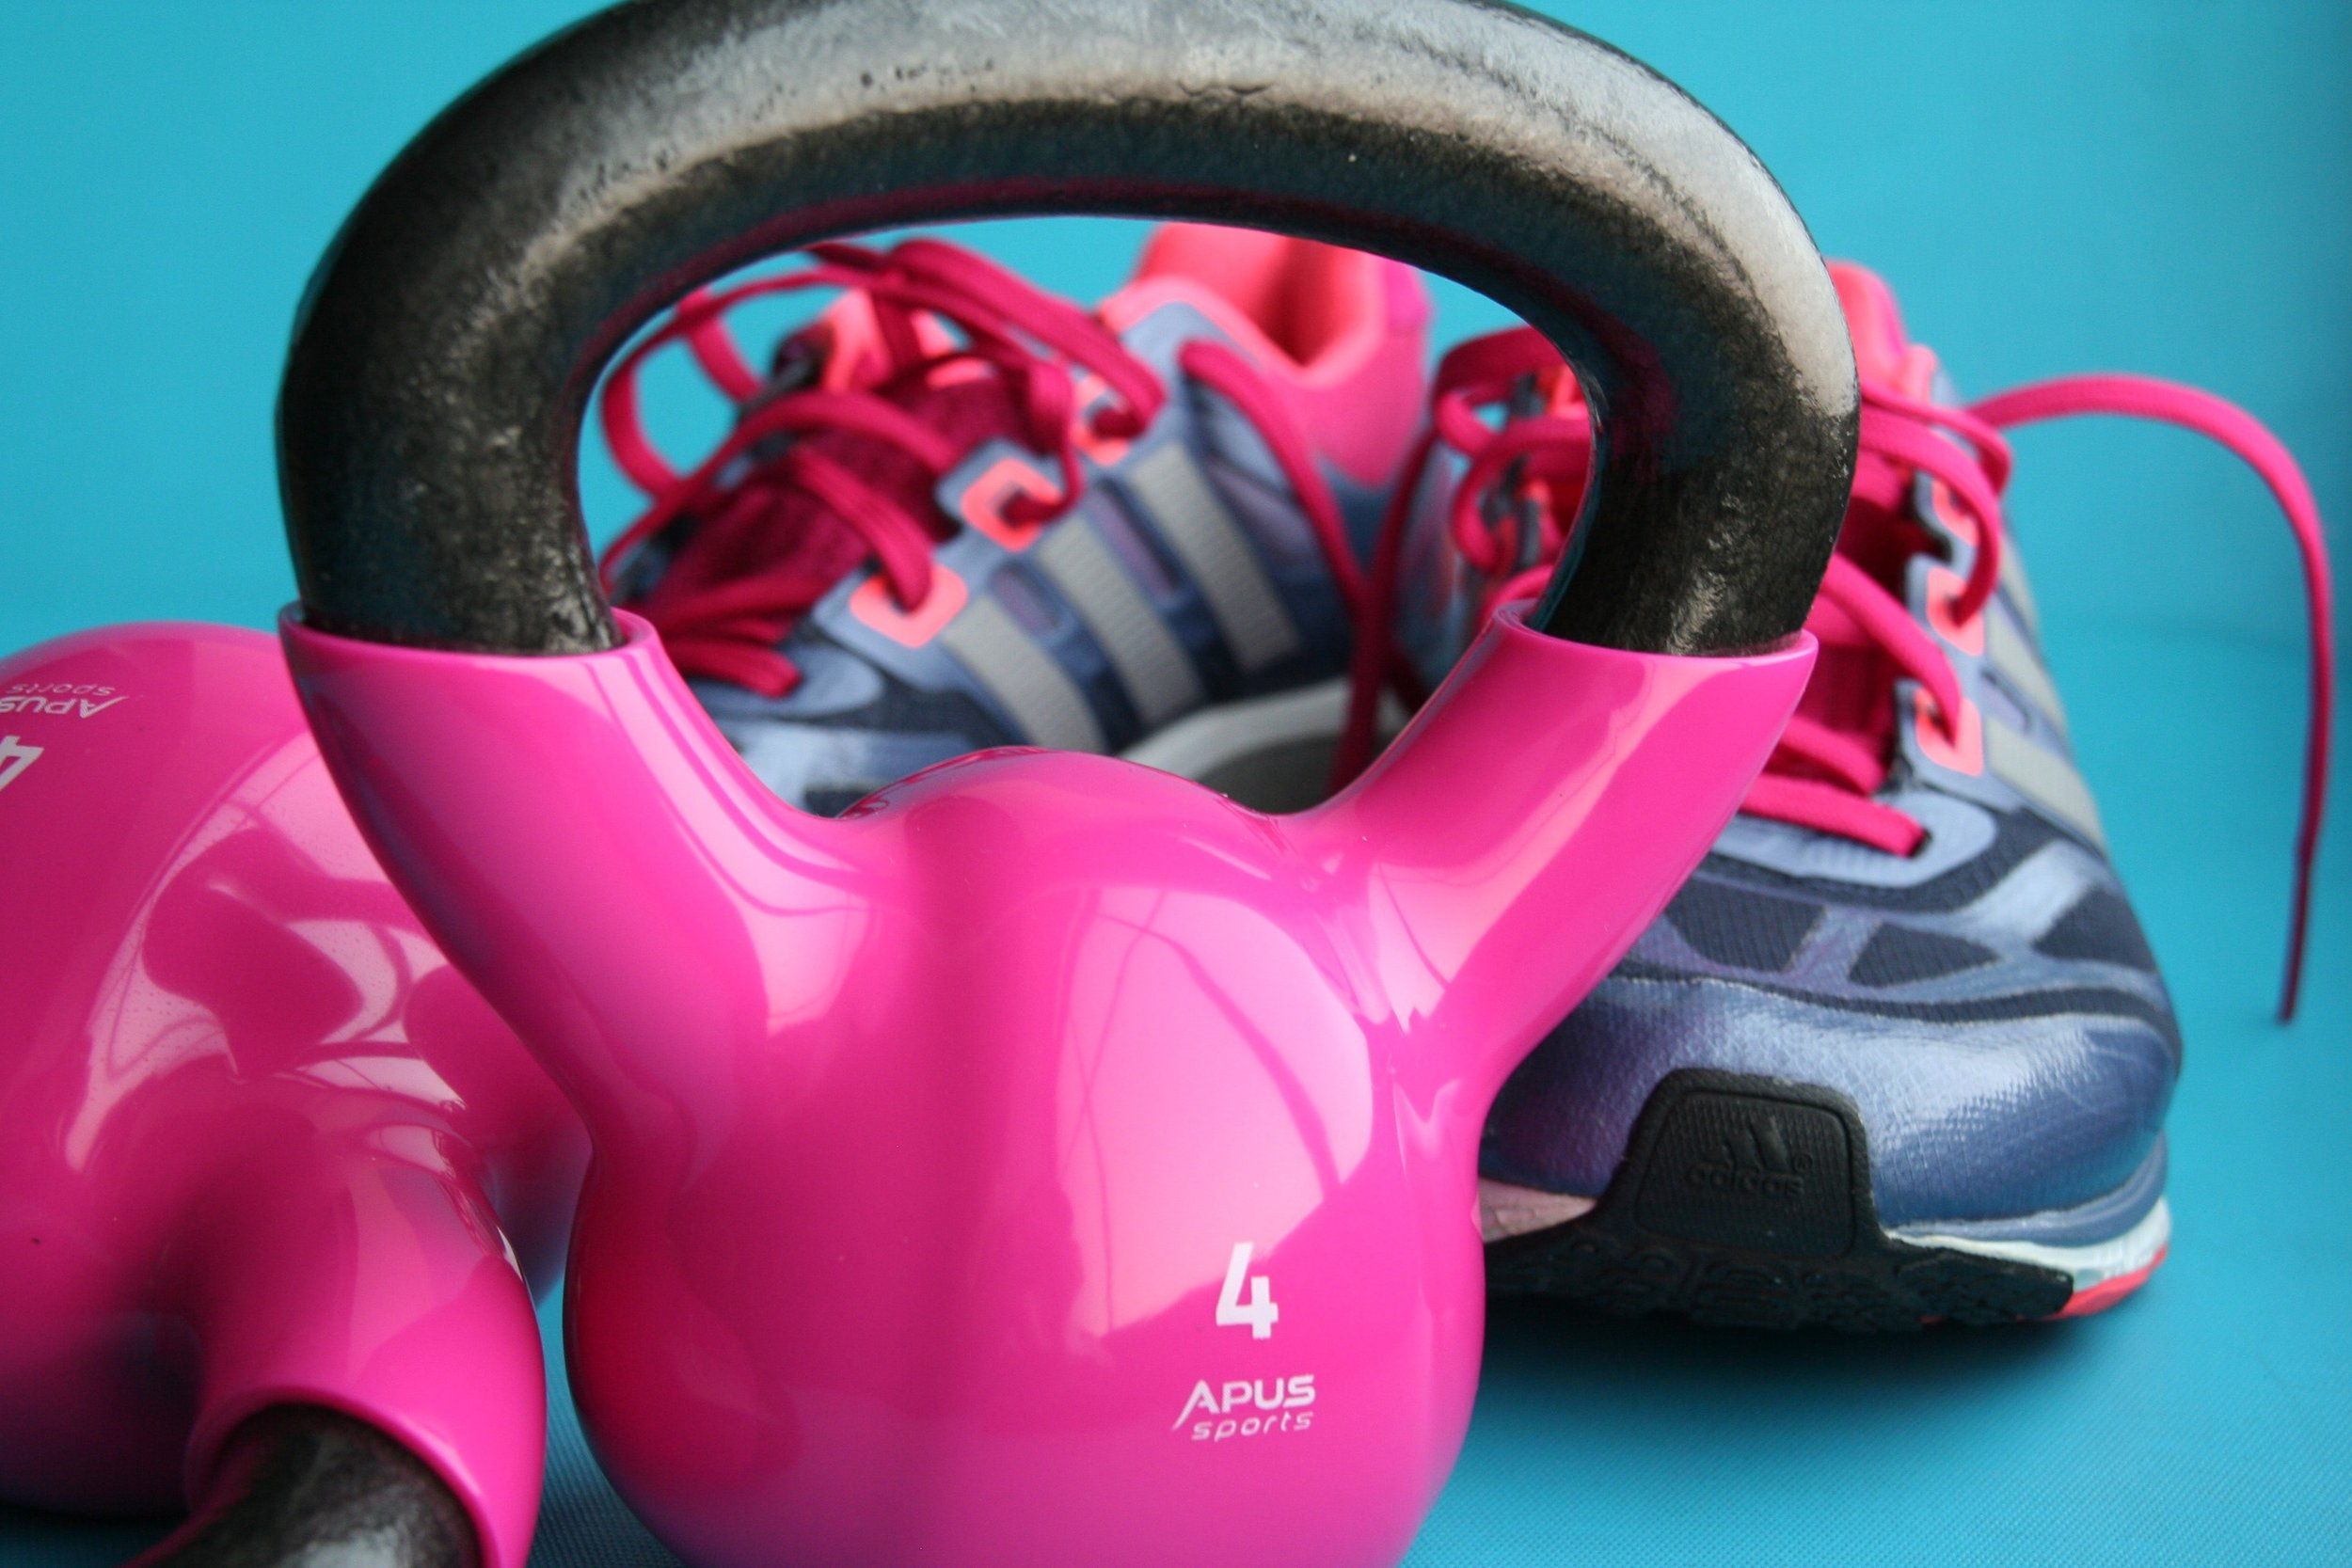 Equipment - Bring a yoga mat, water, and indoor shoes